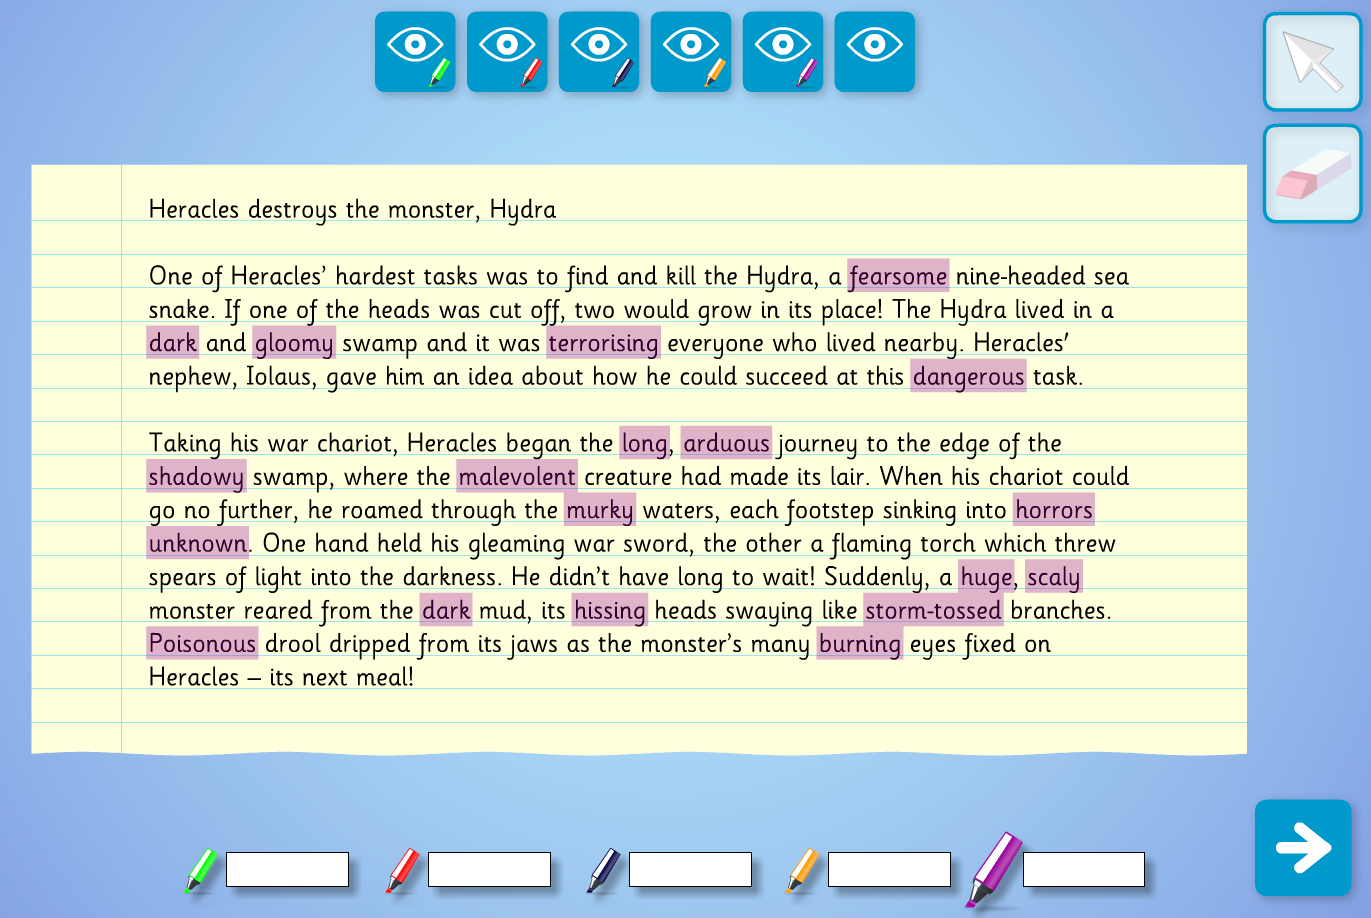 Interactive Highlighter Text Analysis  - Heracles and the Hydra - KS2 Literacy